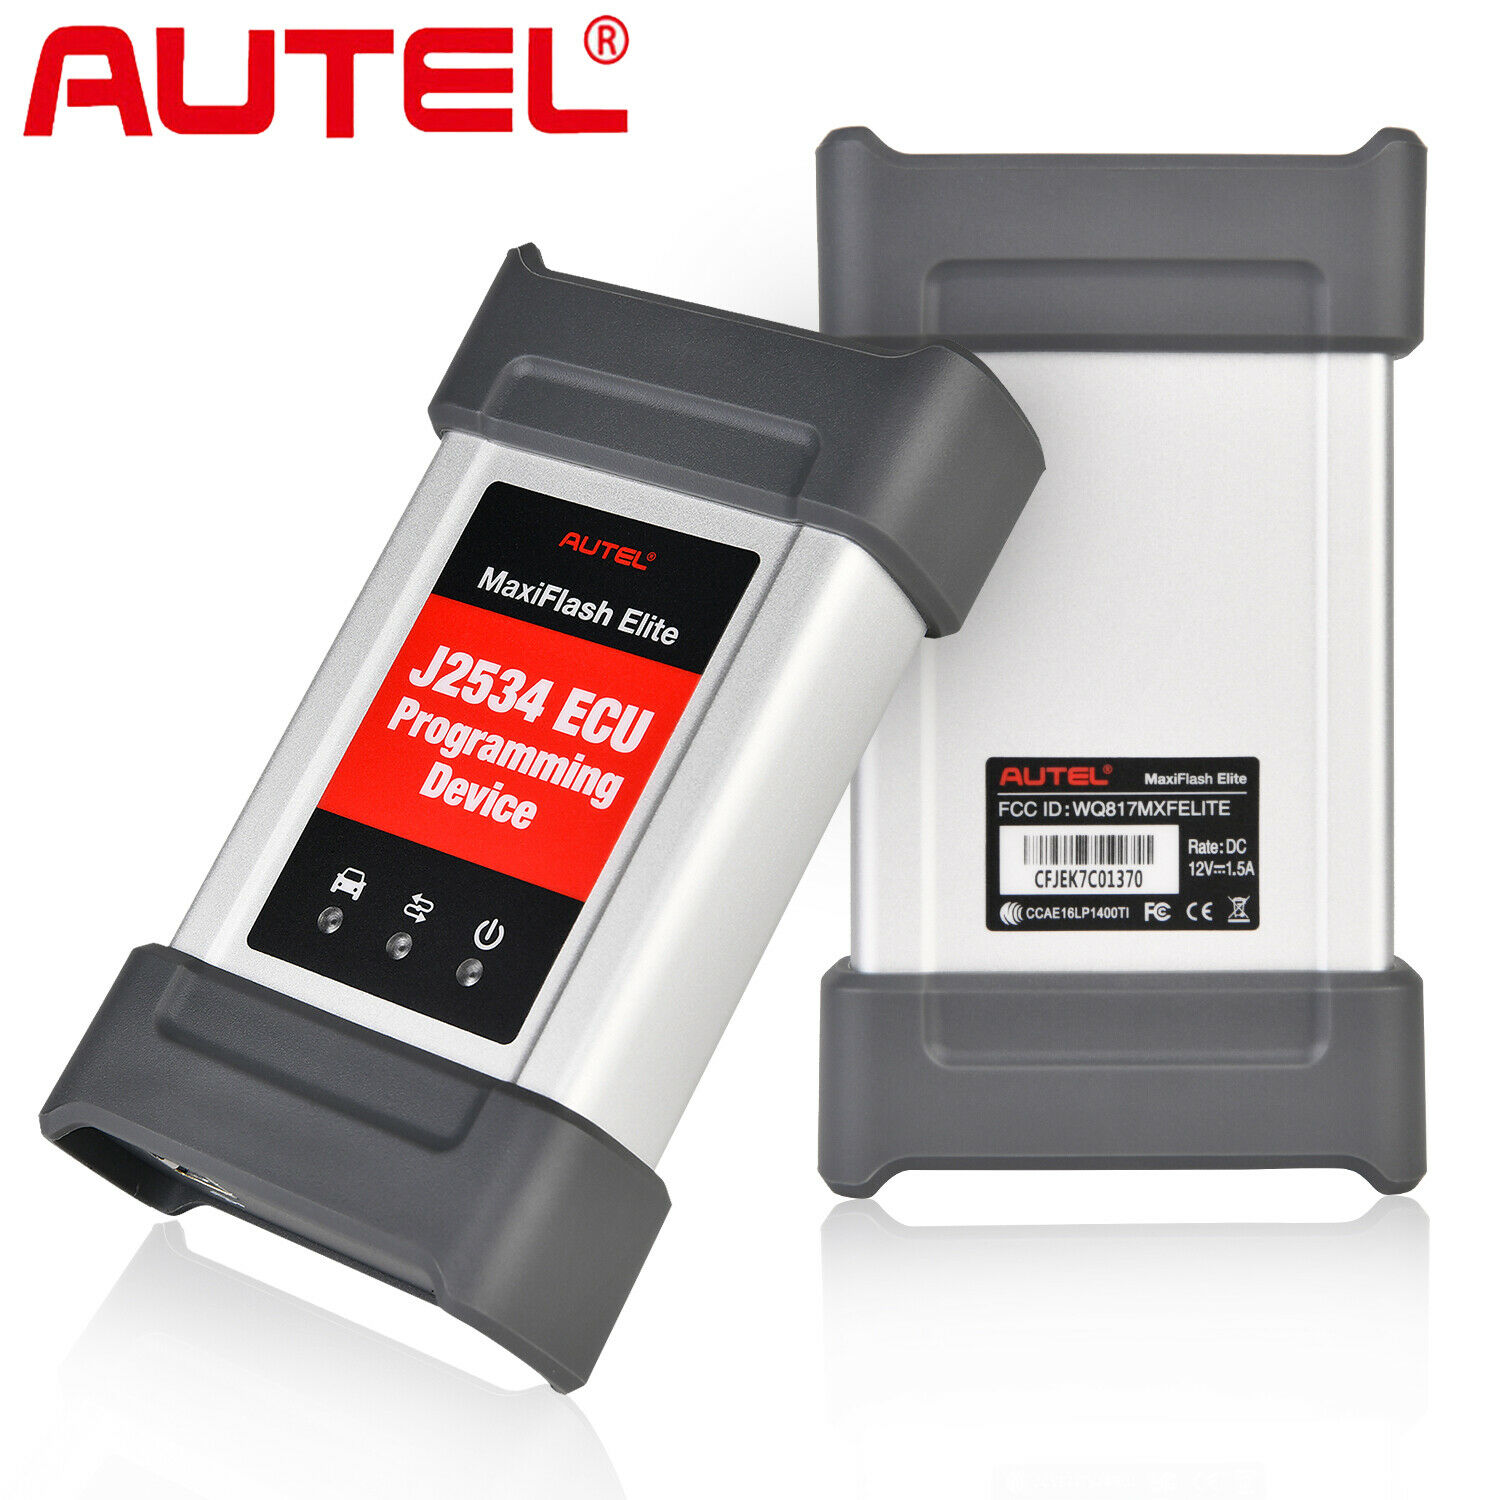 Autel MaxiFlash Elite J2534 ECU Programming Tool For MS908P MK908 Original